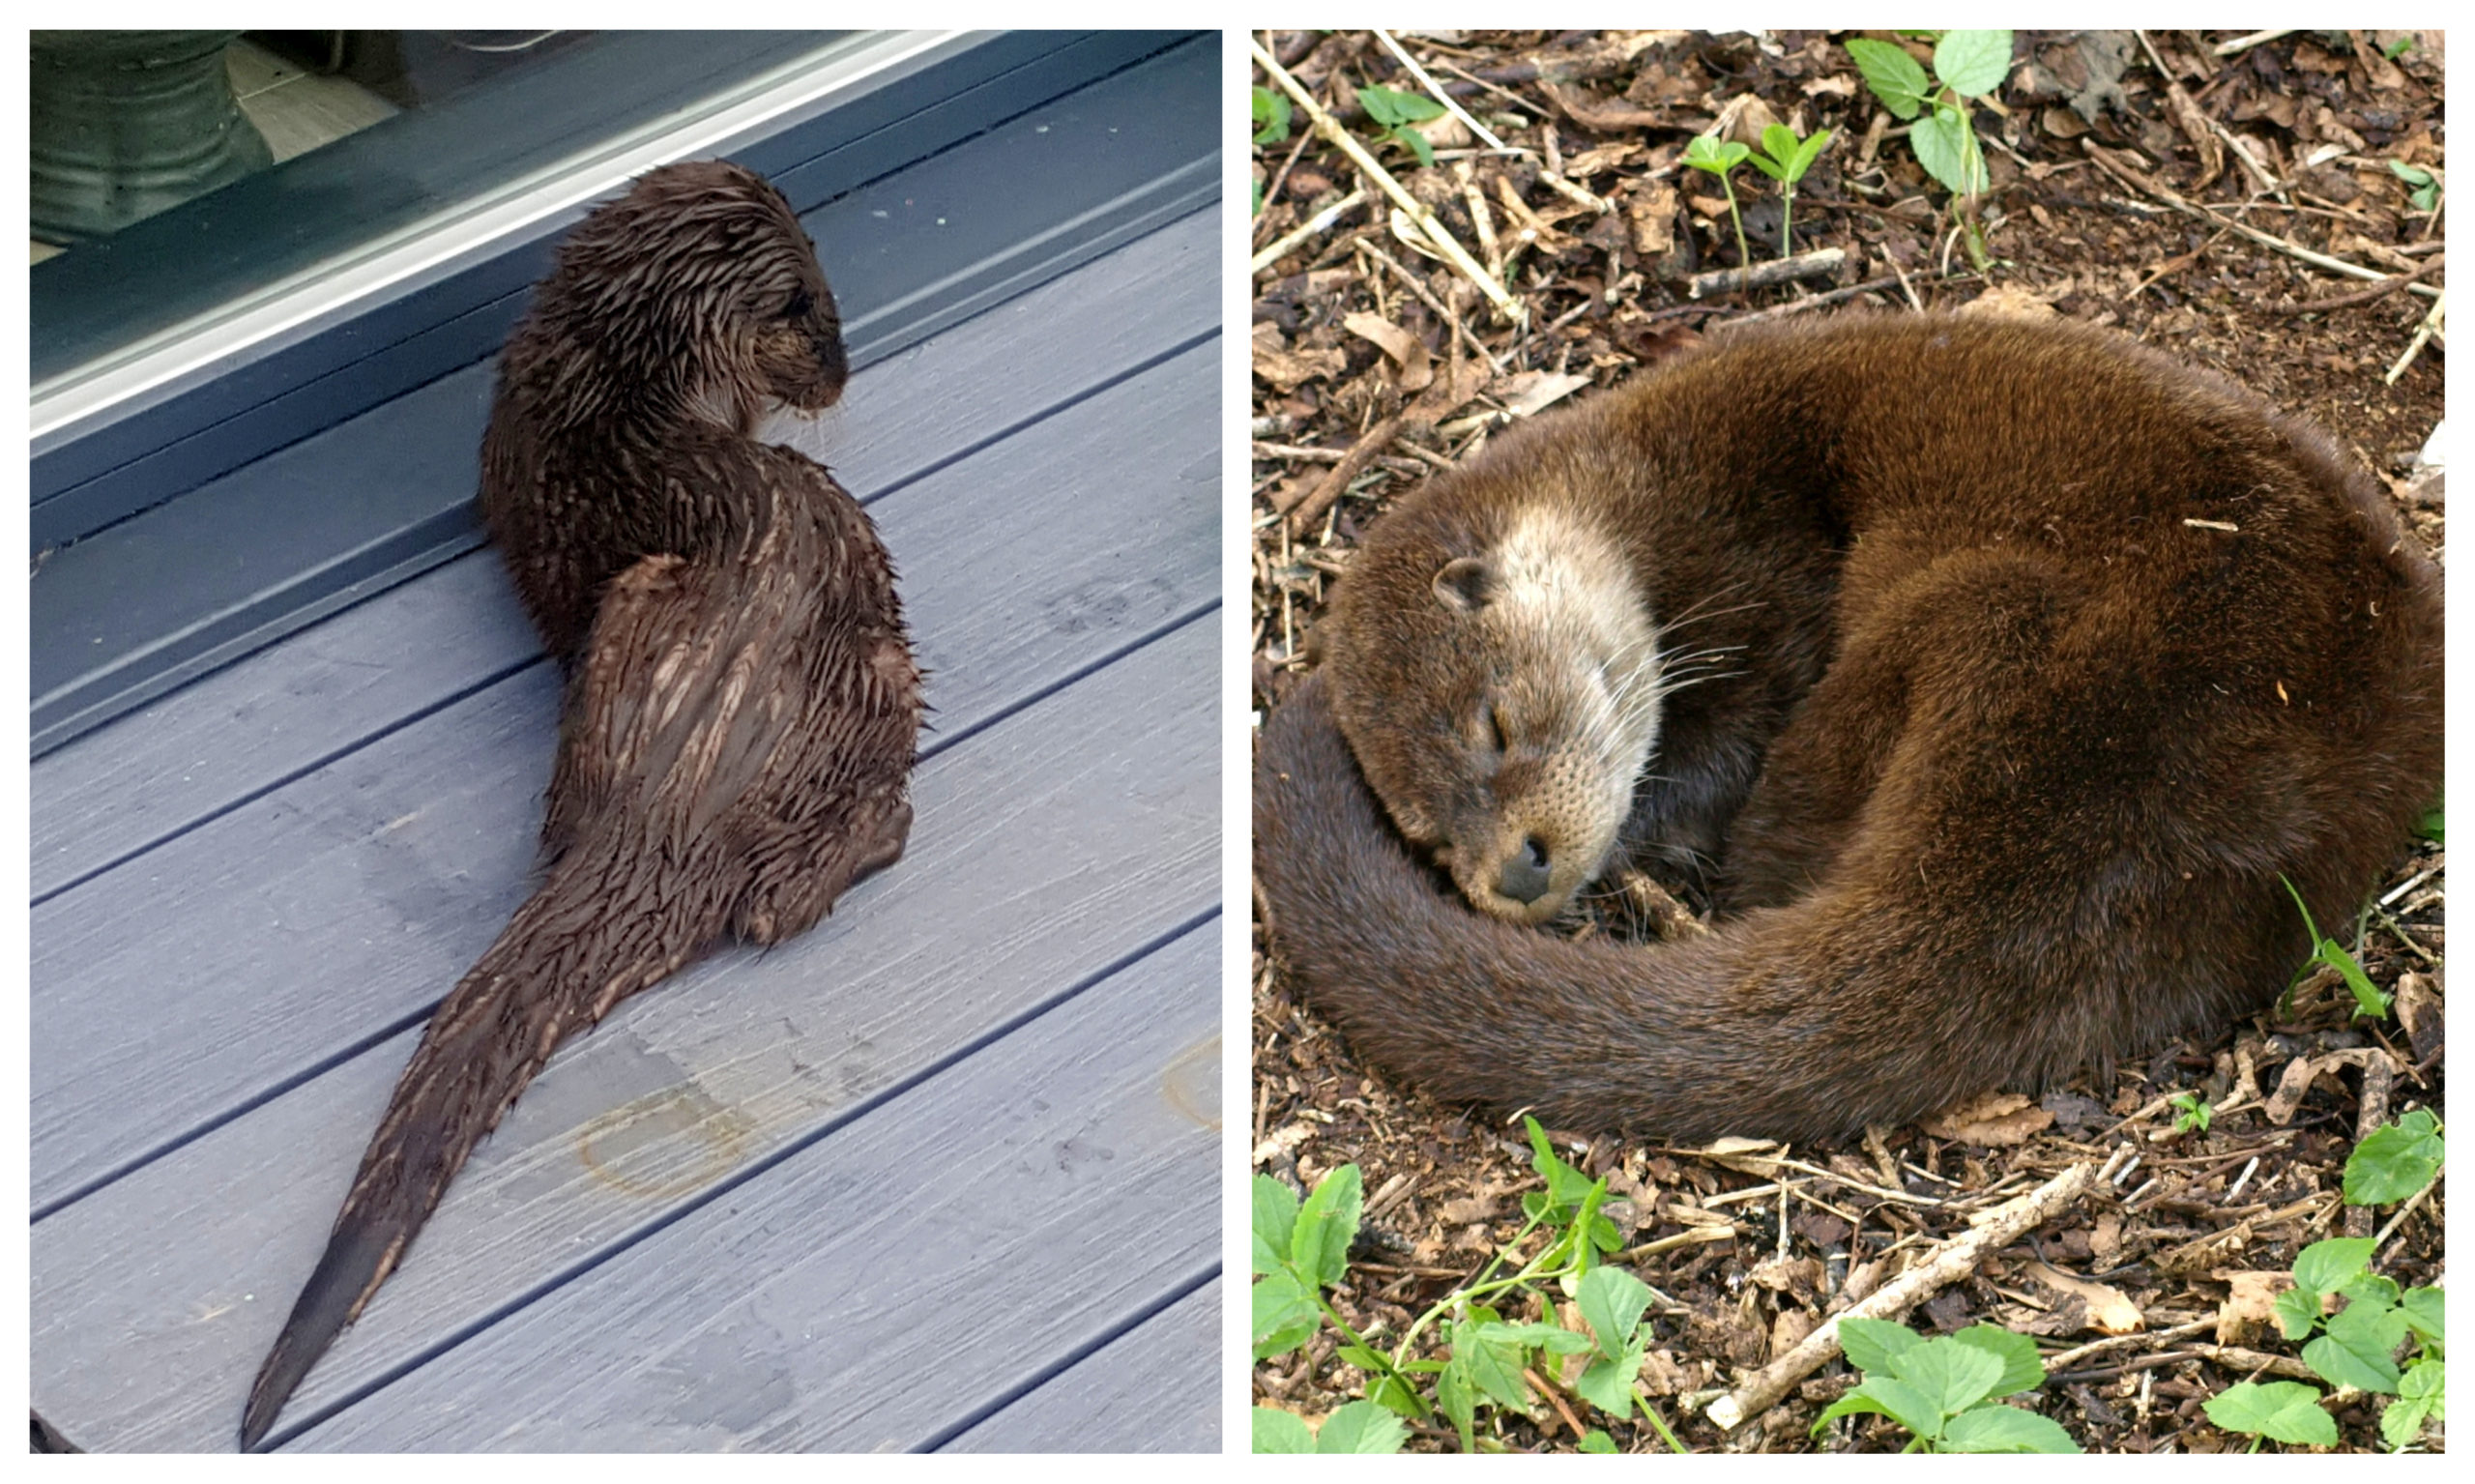 The otter appeared twice at Ms Matthew's home for a feed